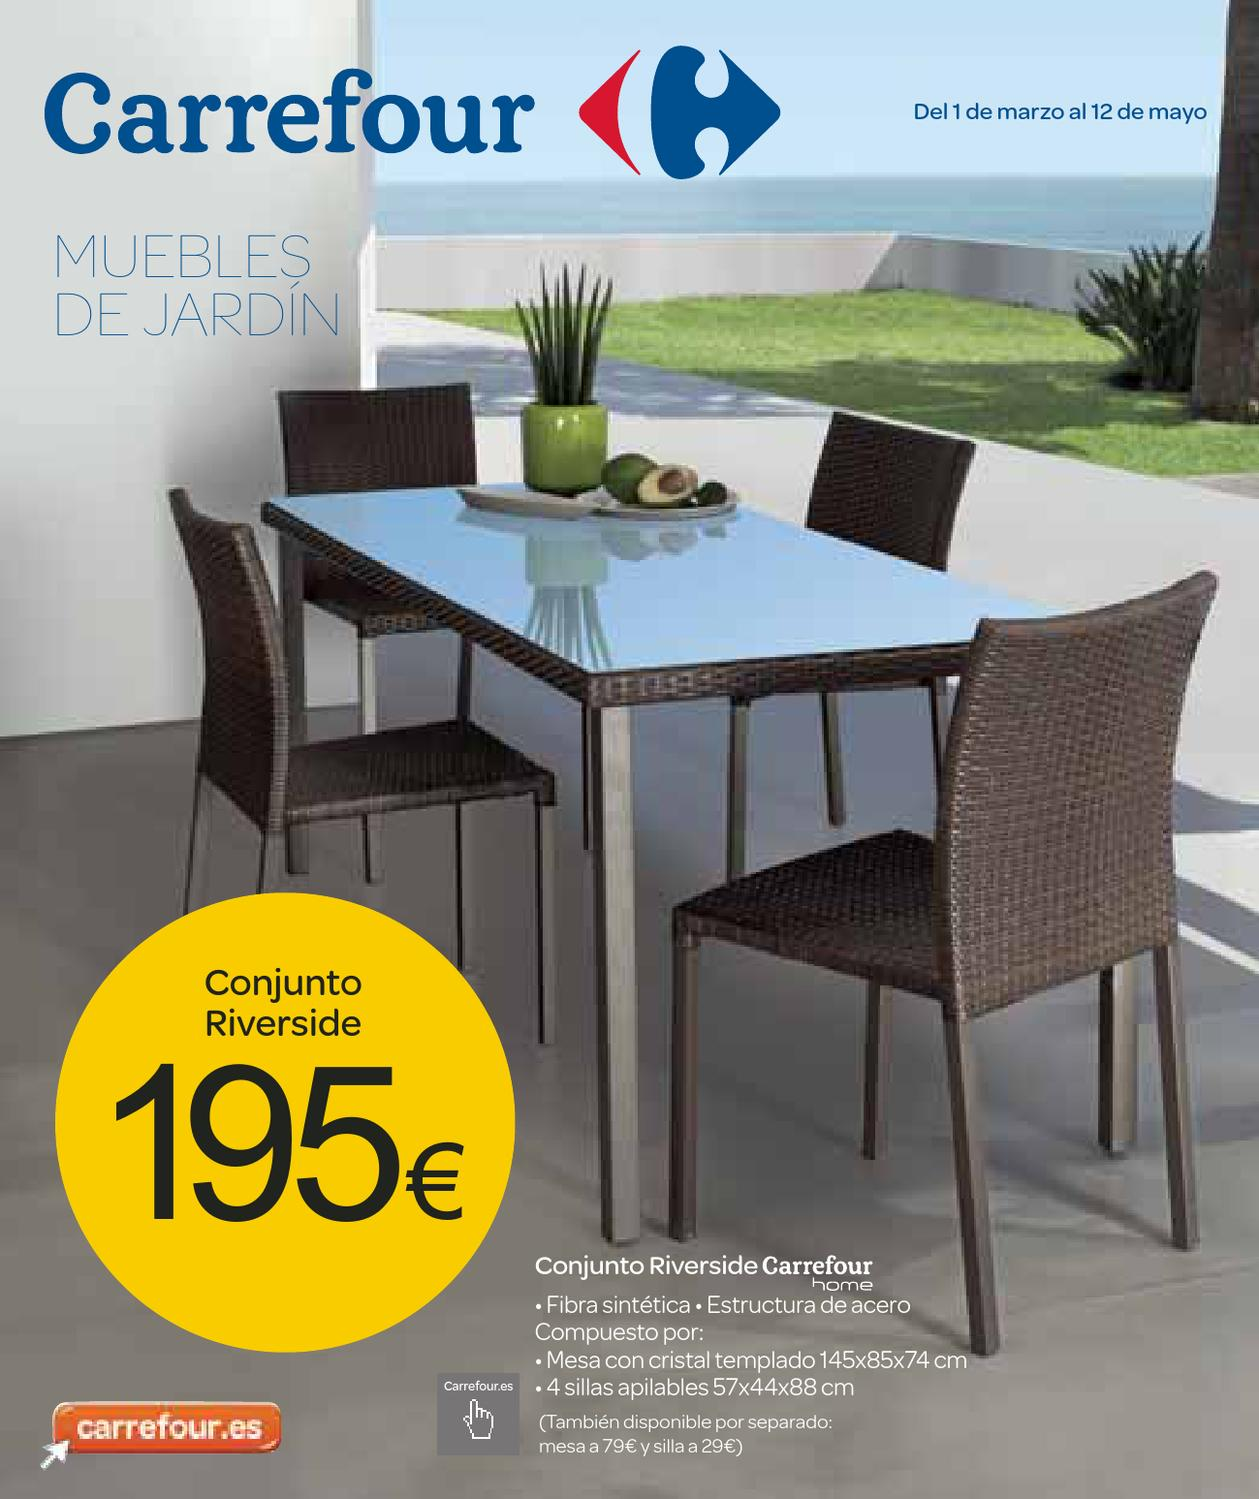 Catalogo de muebles de jardin carrefour by milyuncatalogos for Ofertas muebles de jardin carrefour